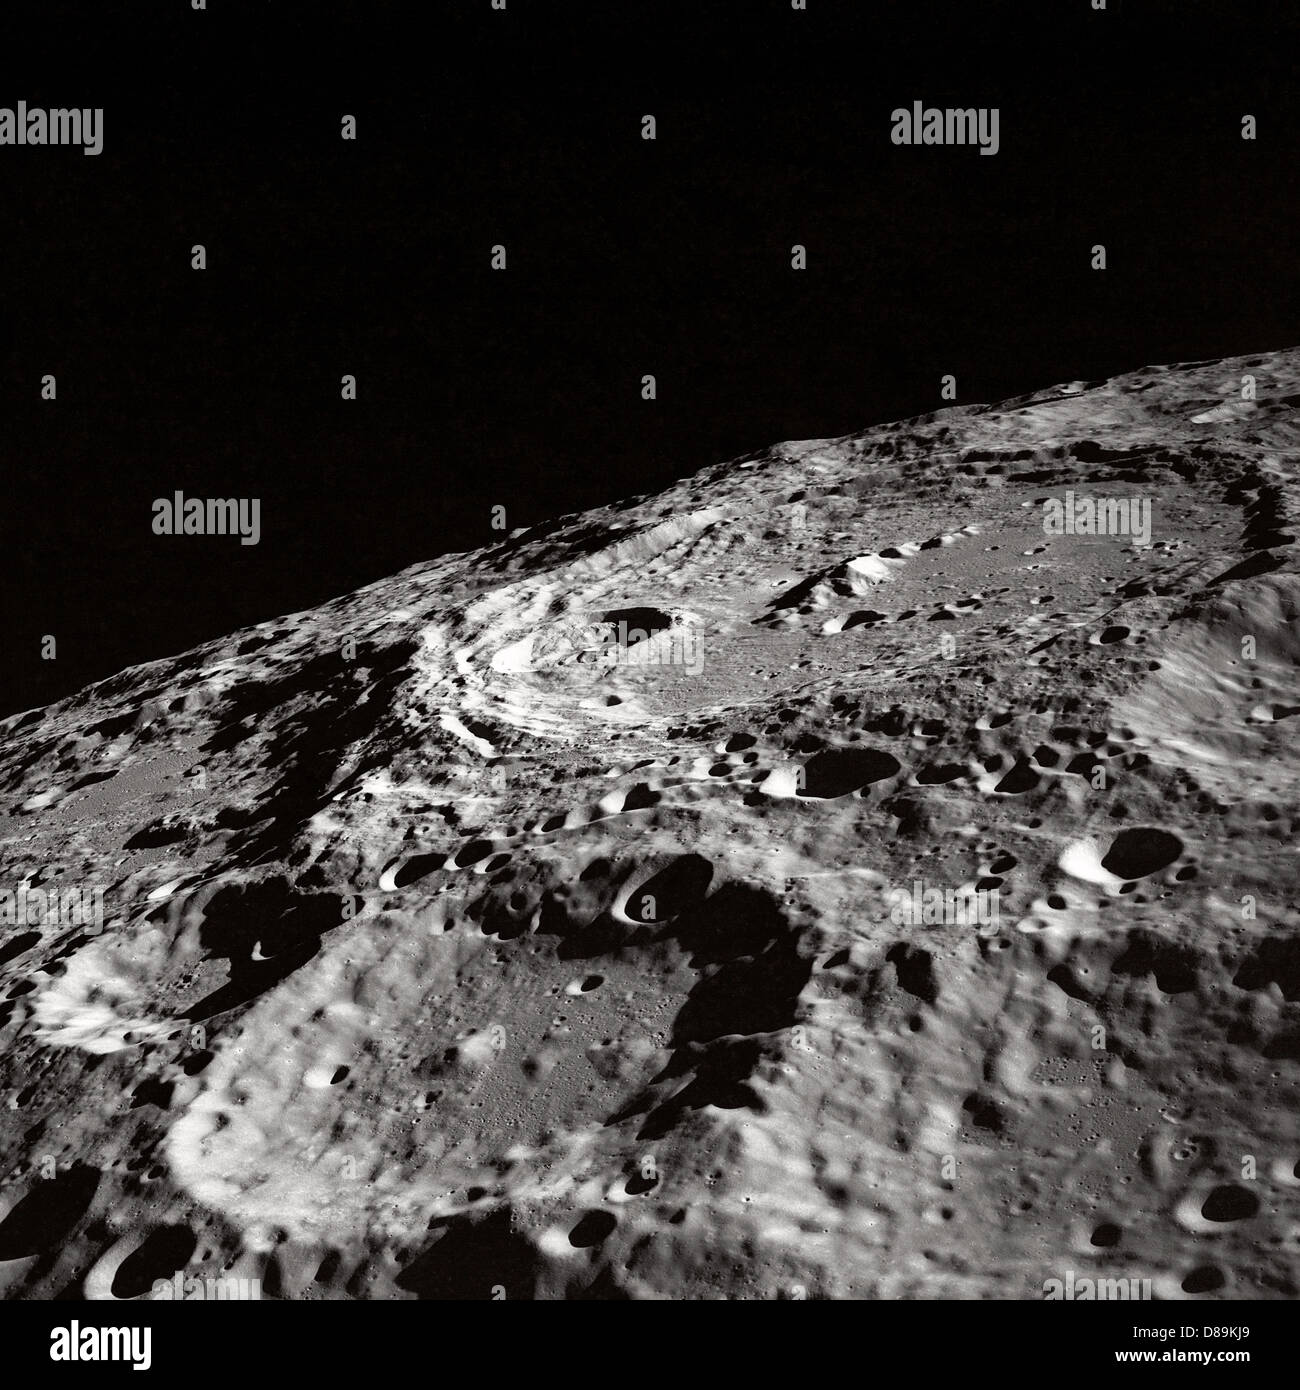 Craters On Lunar Surface - Stock Image